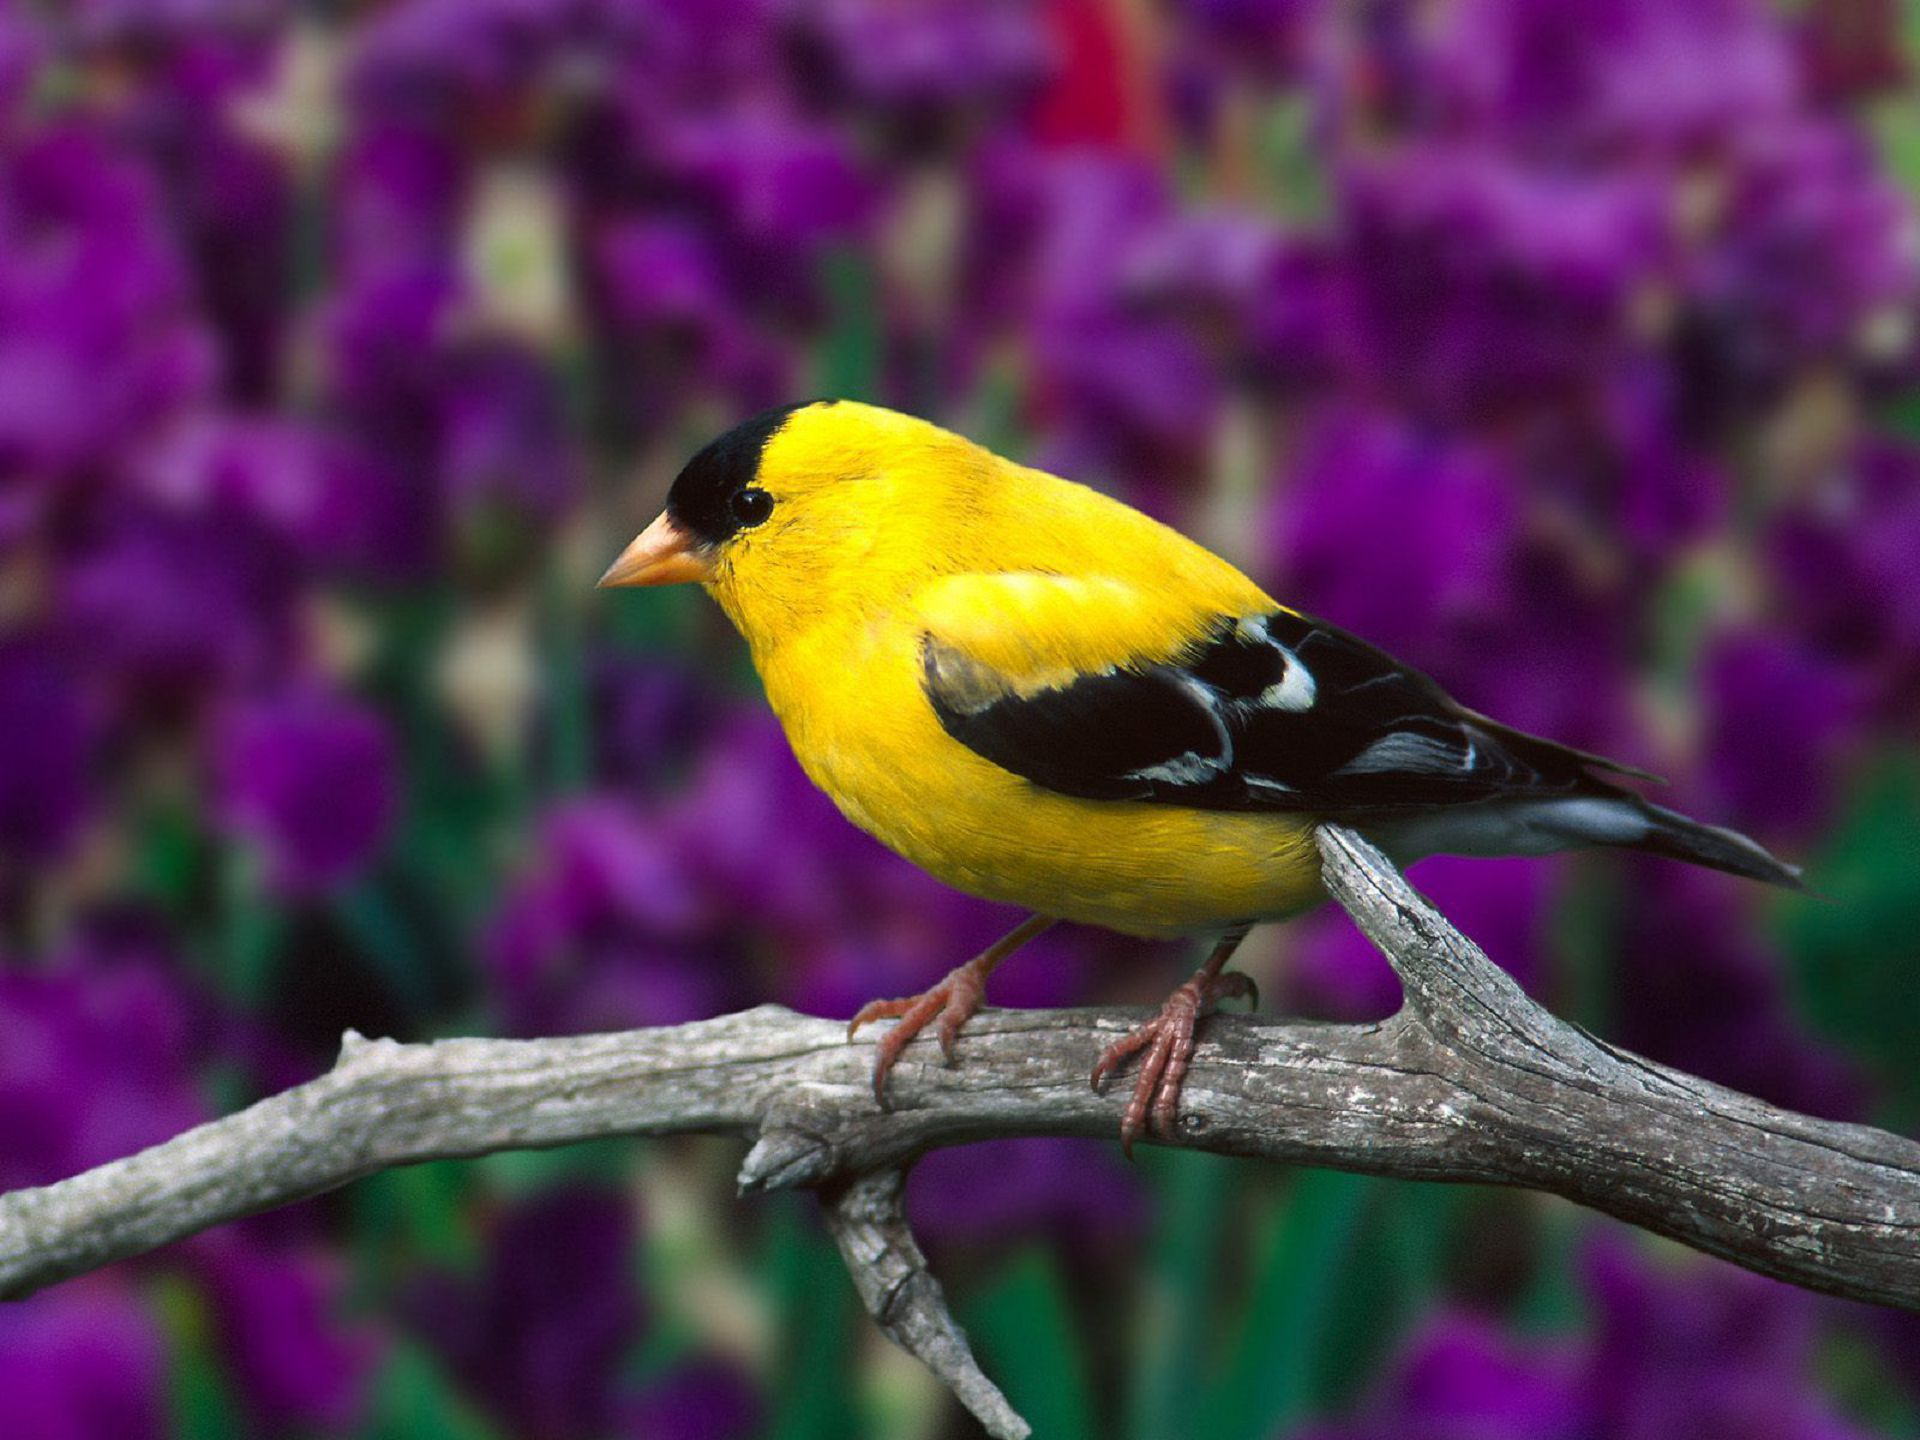 Aves Exoticas Gallery